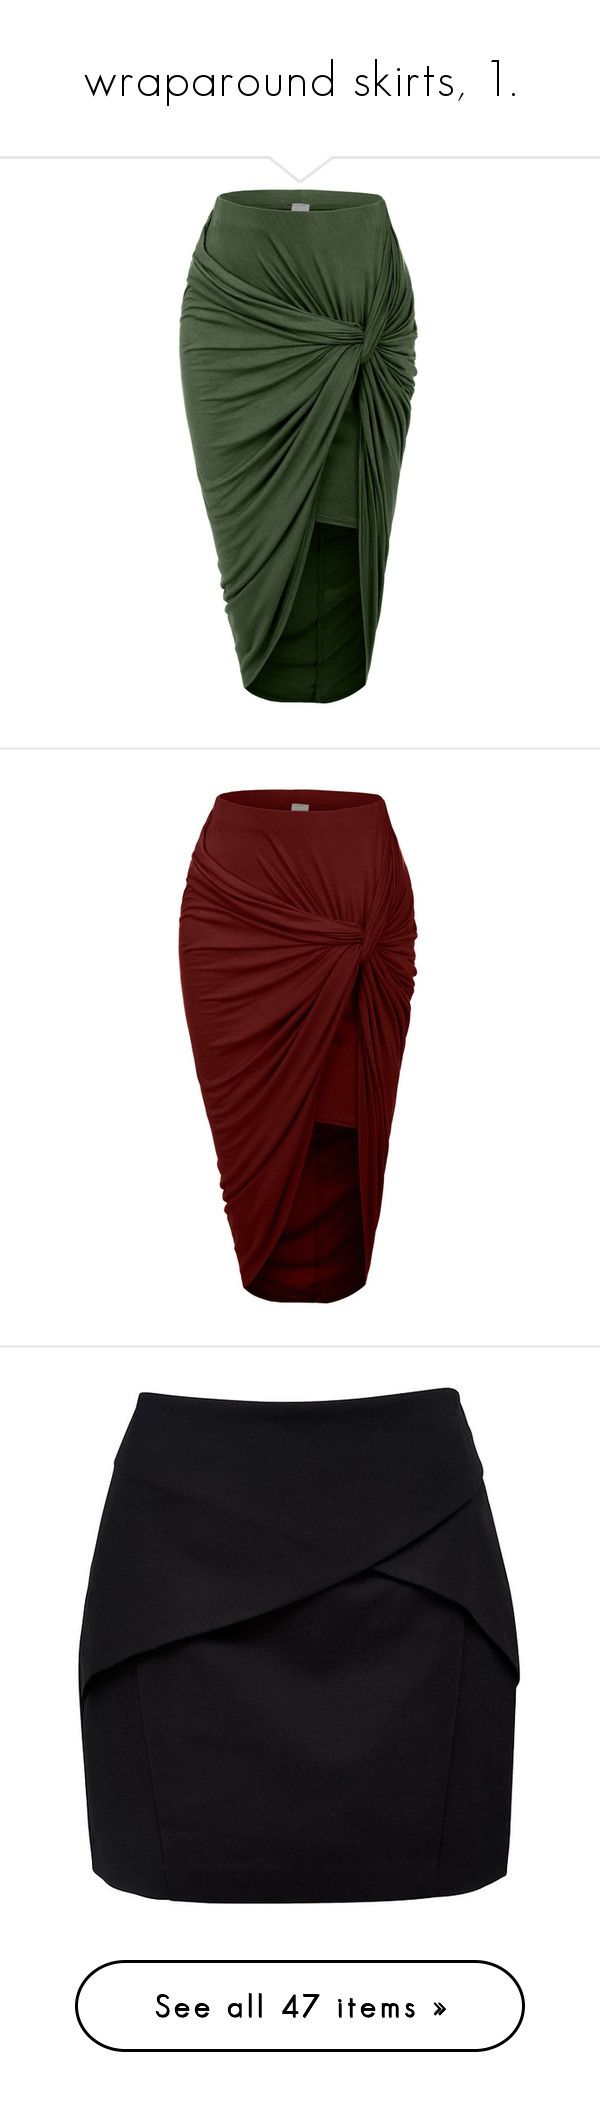 """""""wraparound skirts, 1."""" by originalimanim ❤ liked on Polyvore featuring skirts, bottoms, green skirt, hi low skirt, high low wrap skirt, high low skirt, green wrap skirt, red high low skirt, red hi low skirt and short front long back skirt"""